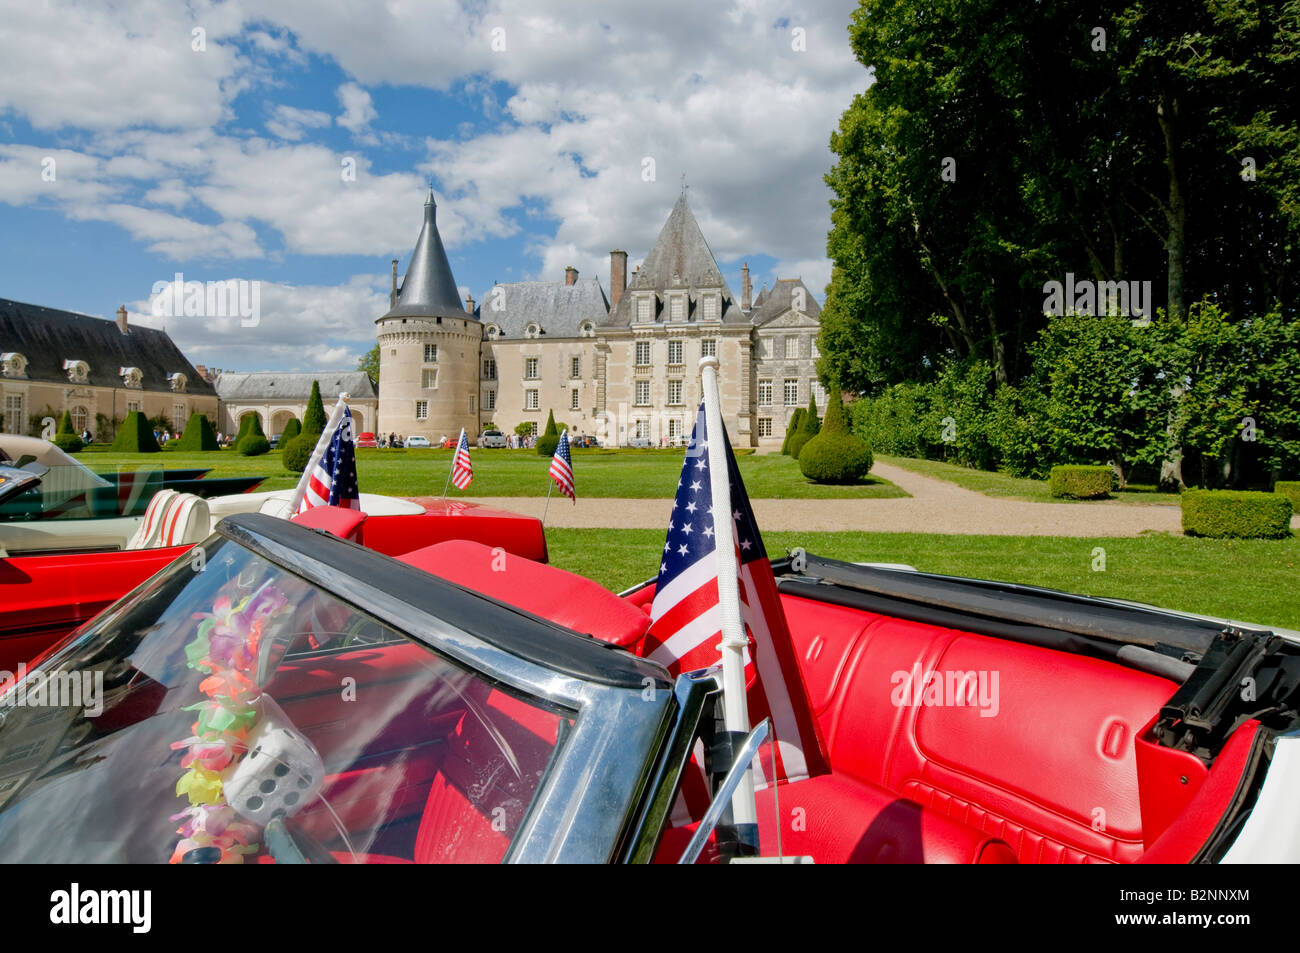 American convertible at car show in the park of Chateau Azay-le-Ferron, Indre, France. - Stock Image